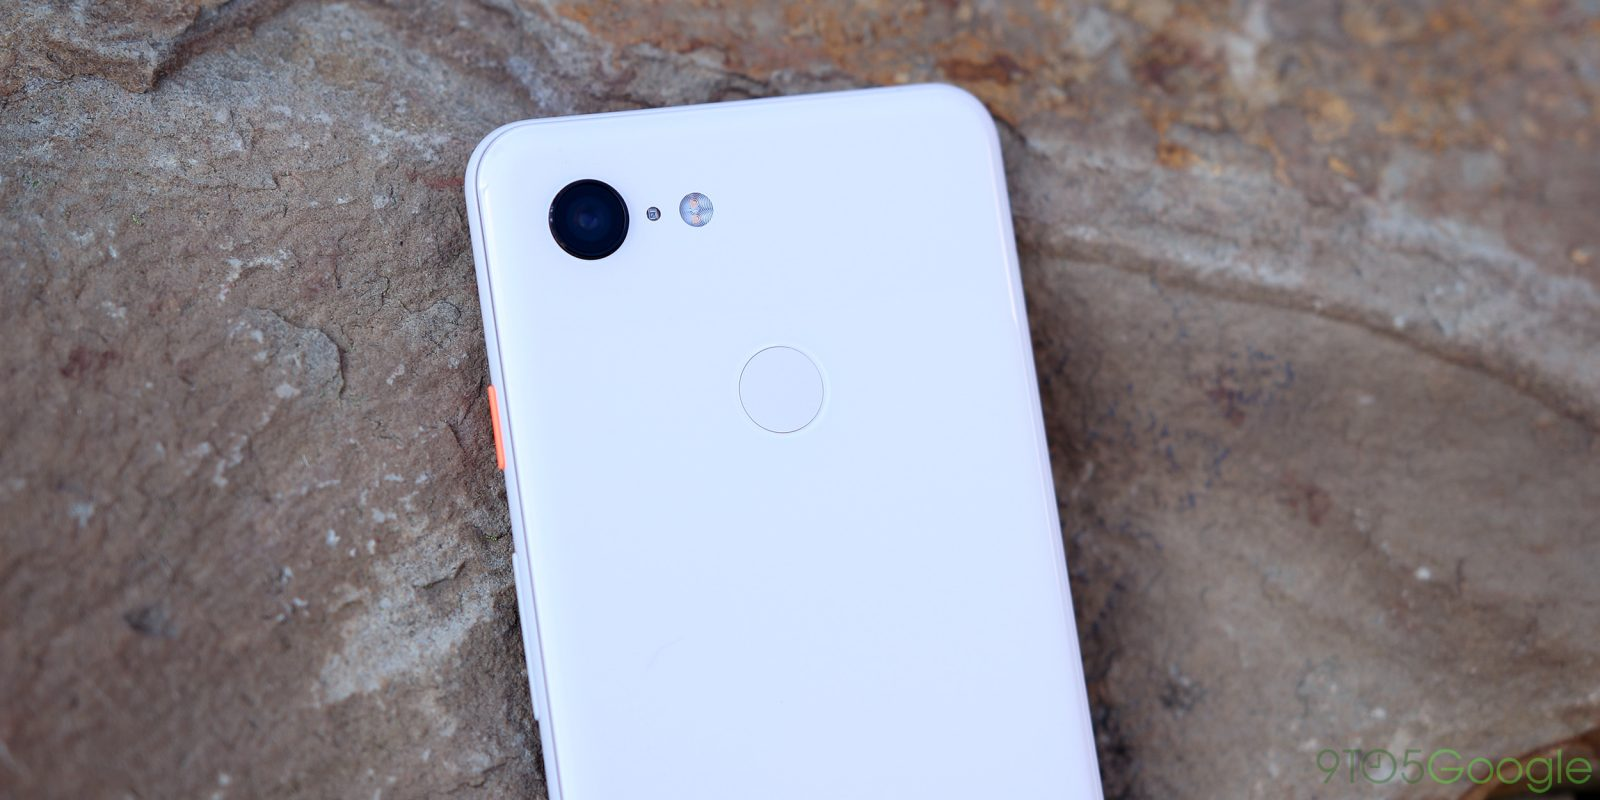 Pixel 3 memory management issue kills apps, affects camera - 9to5Google